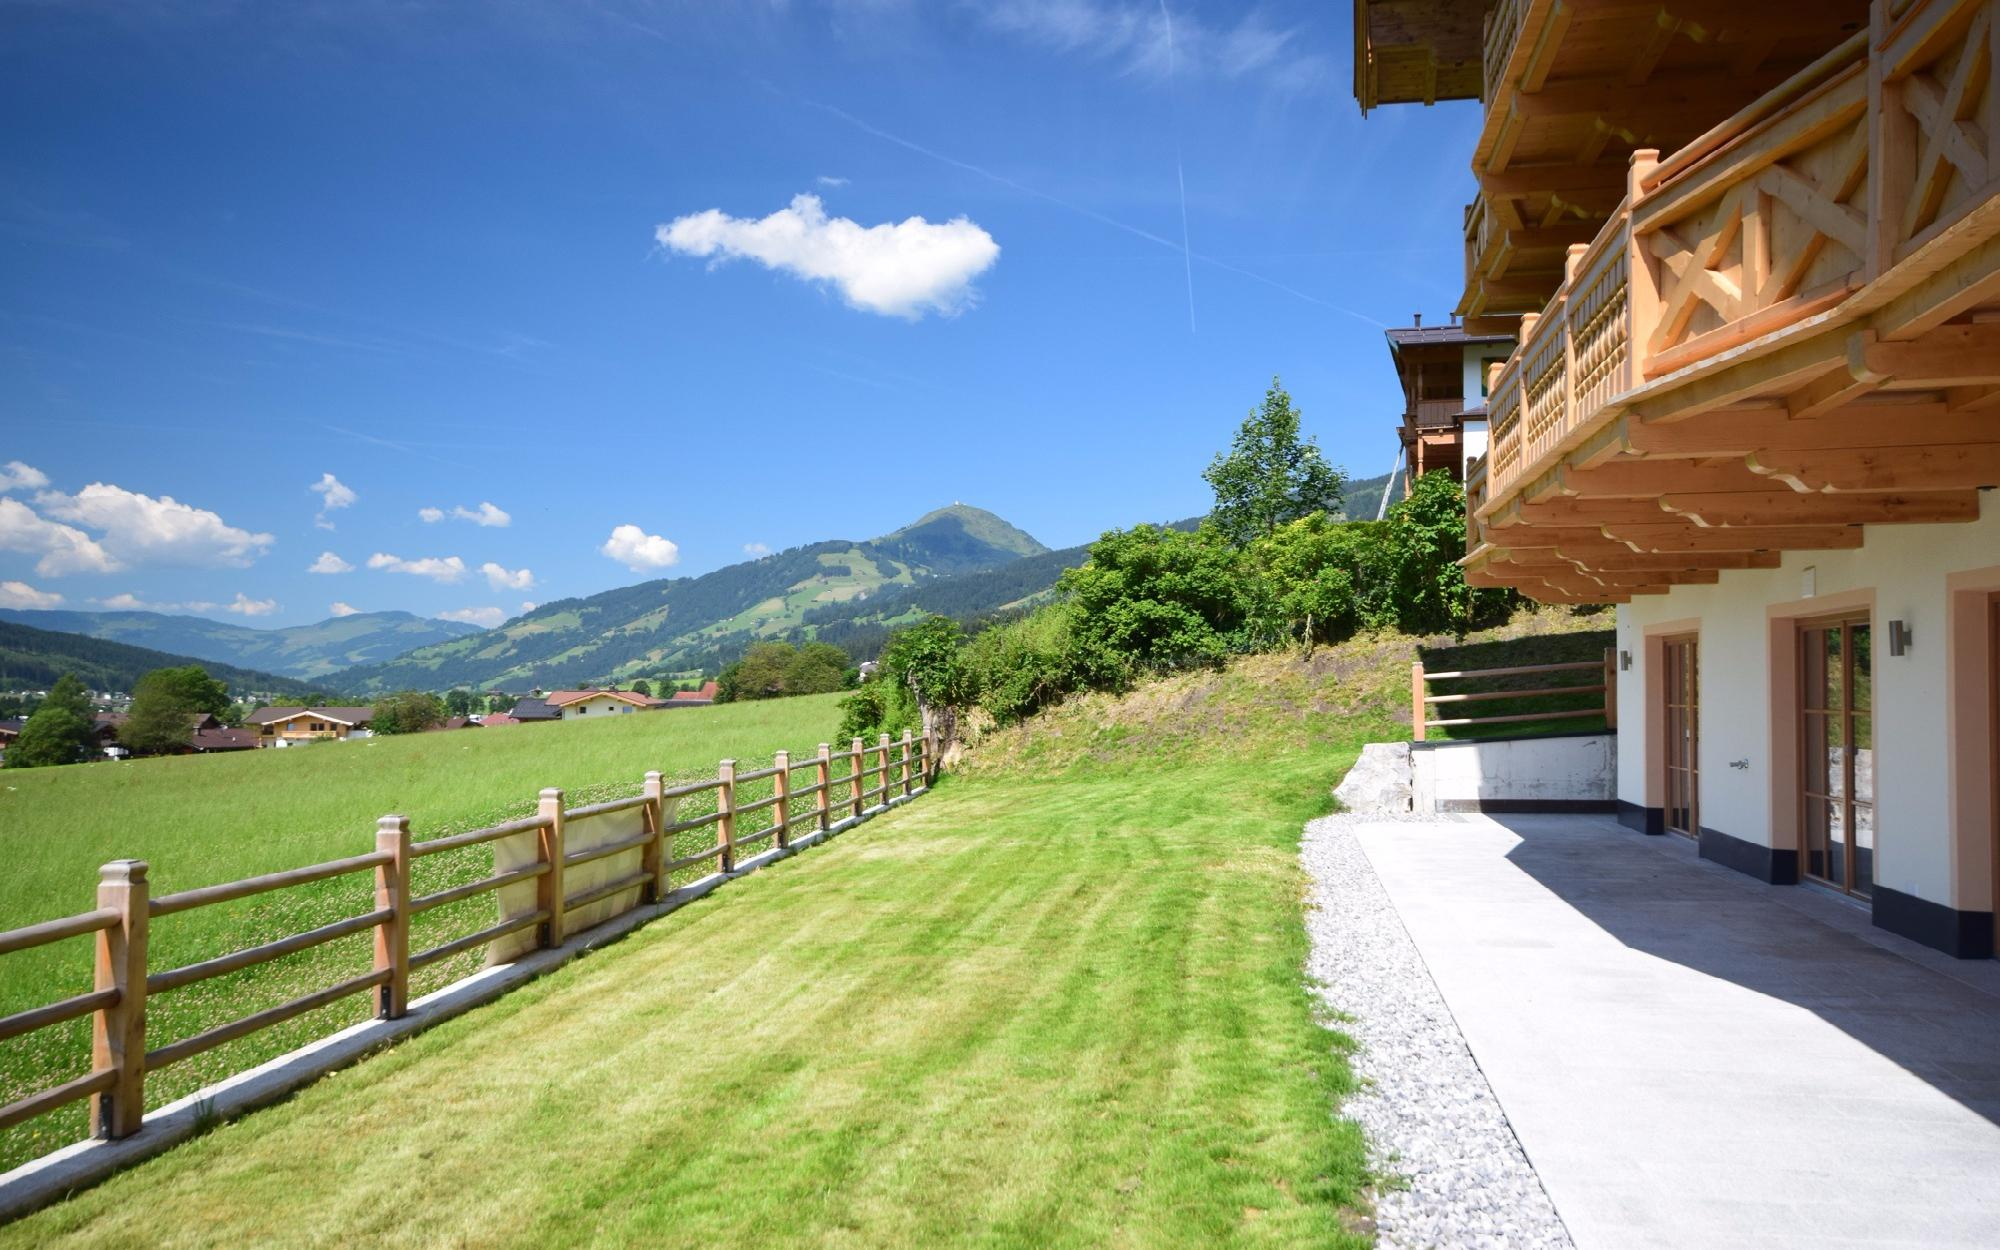 Penthouse & apartment in an unobstructed sunny view in Kirchberg for Sale - Austria - Tirol